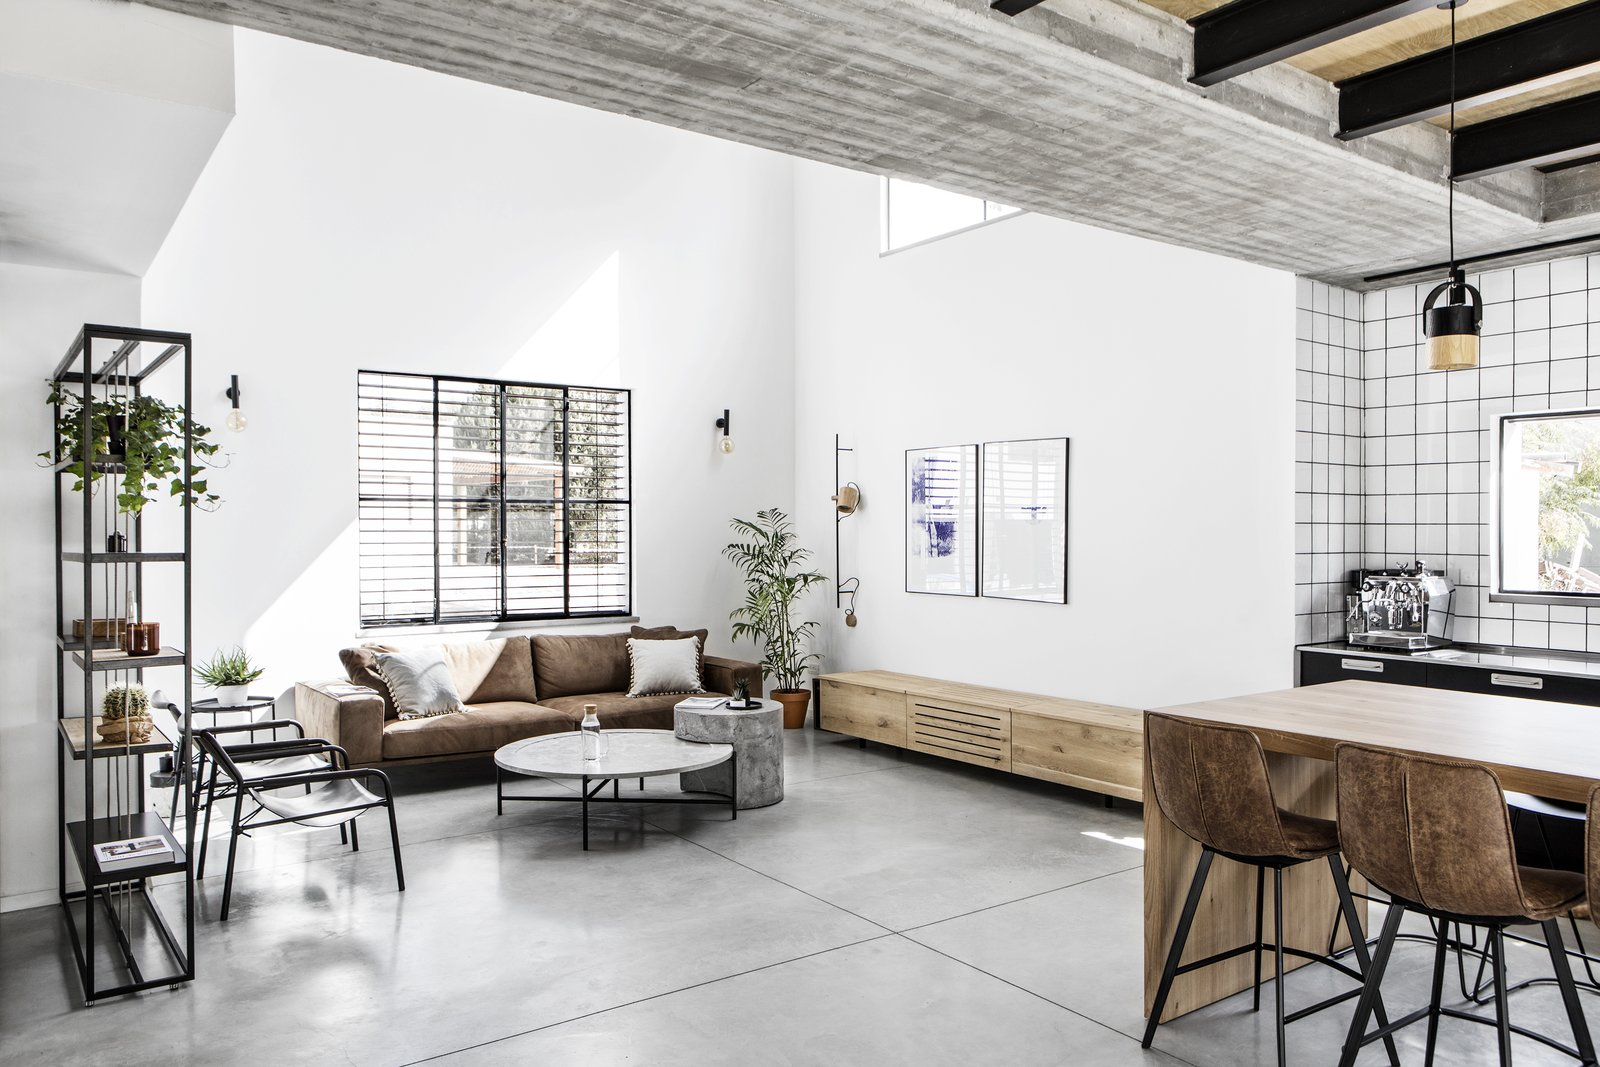 Living Room, Sofa, Ottomans, Chair, Coffee Tables, Console Tables, Bookcase, Pendant Lighting, Wall Lighting, and Concrete Floor  Nir Am House by Shir Shtaigman